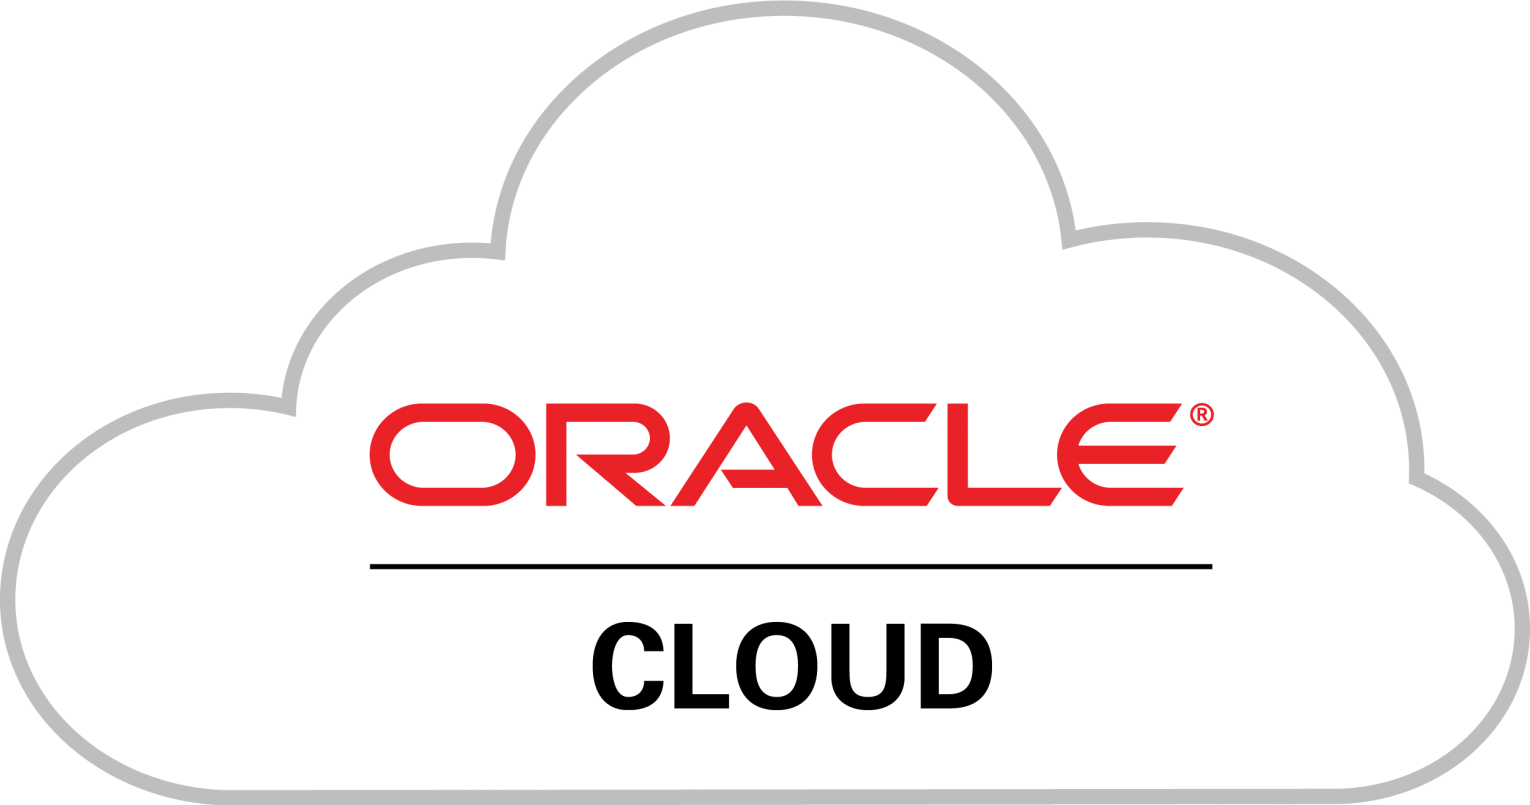 traust oracle cloud minneapolis